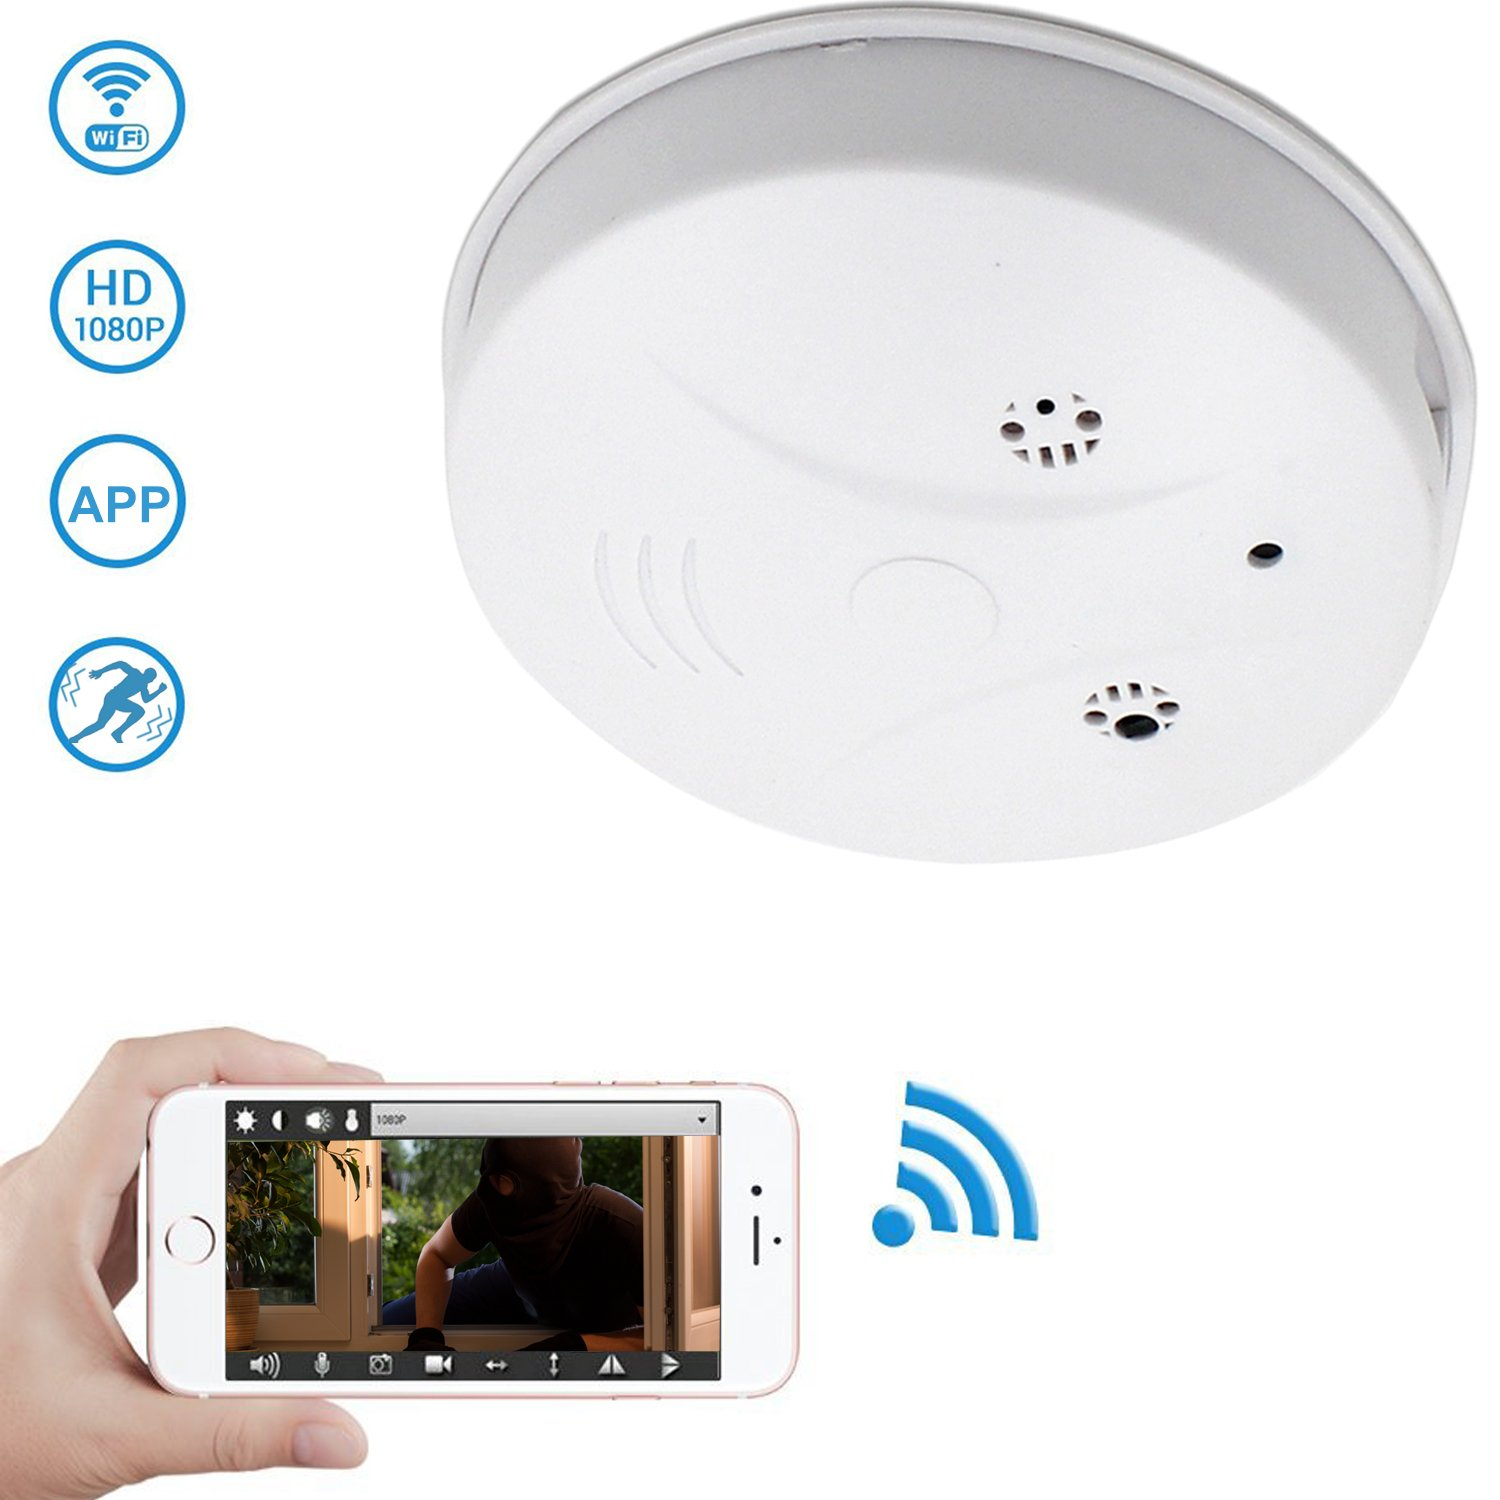 WiFi Hidden Camera Spy Camera Smoke Detector, DareTang HD 1080P Motion Detection Activated Mini Video Recorder Security Cameras for iPhone,Android and PC